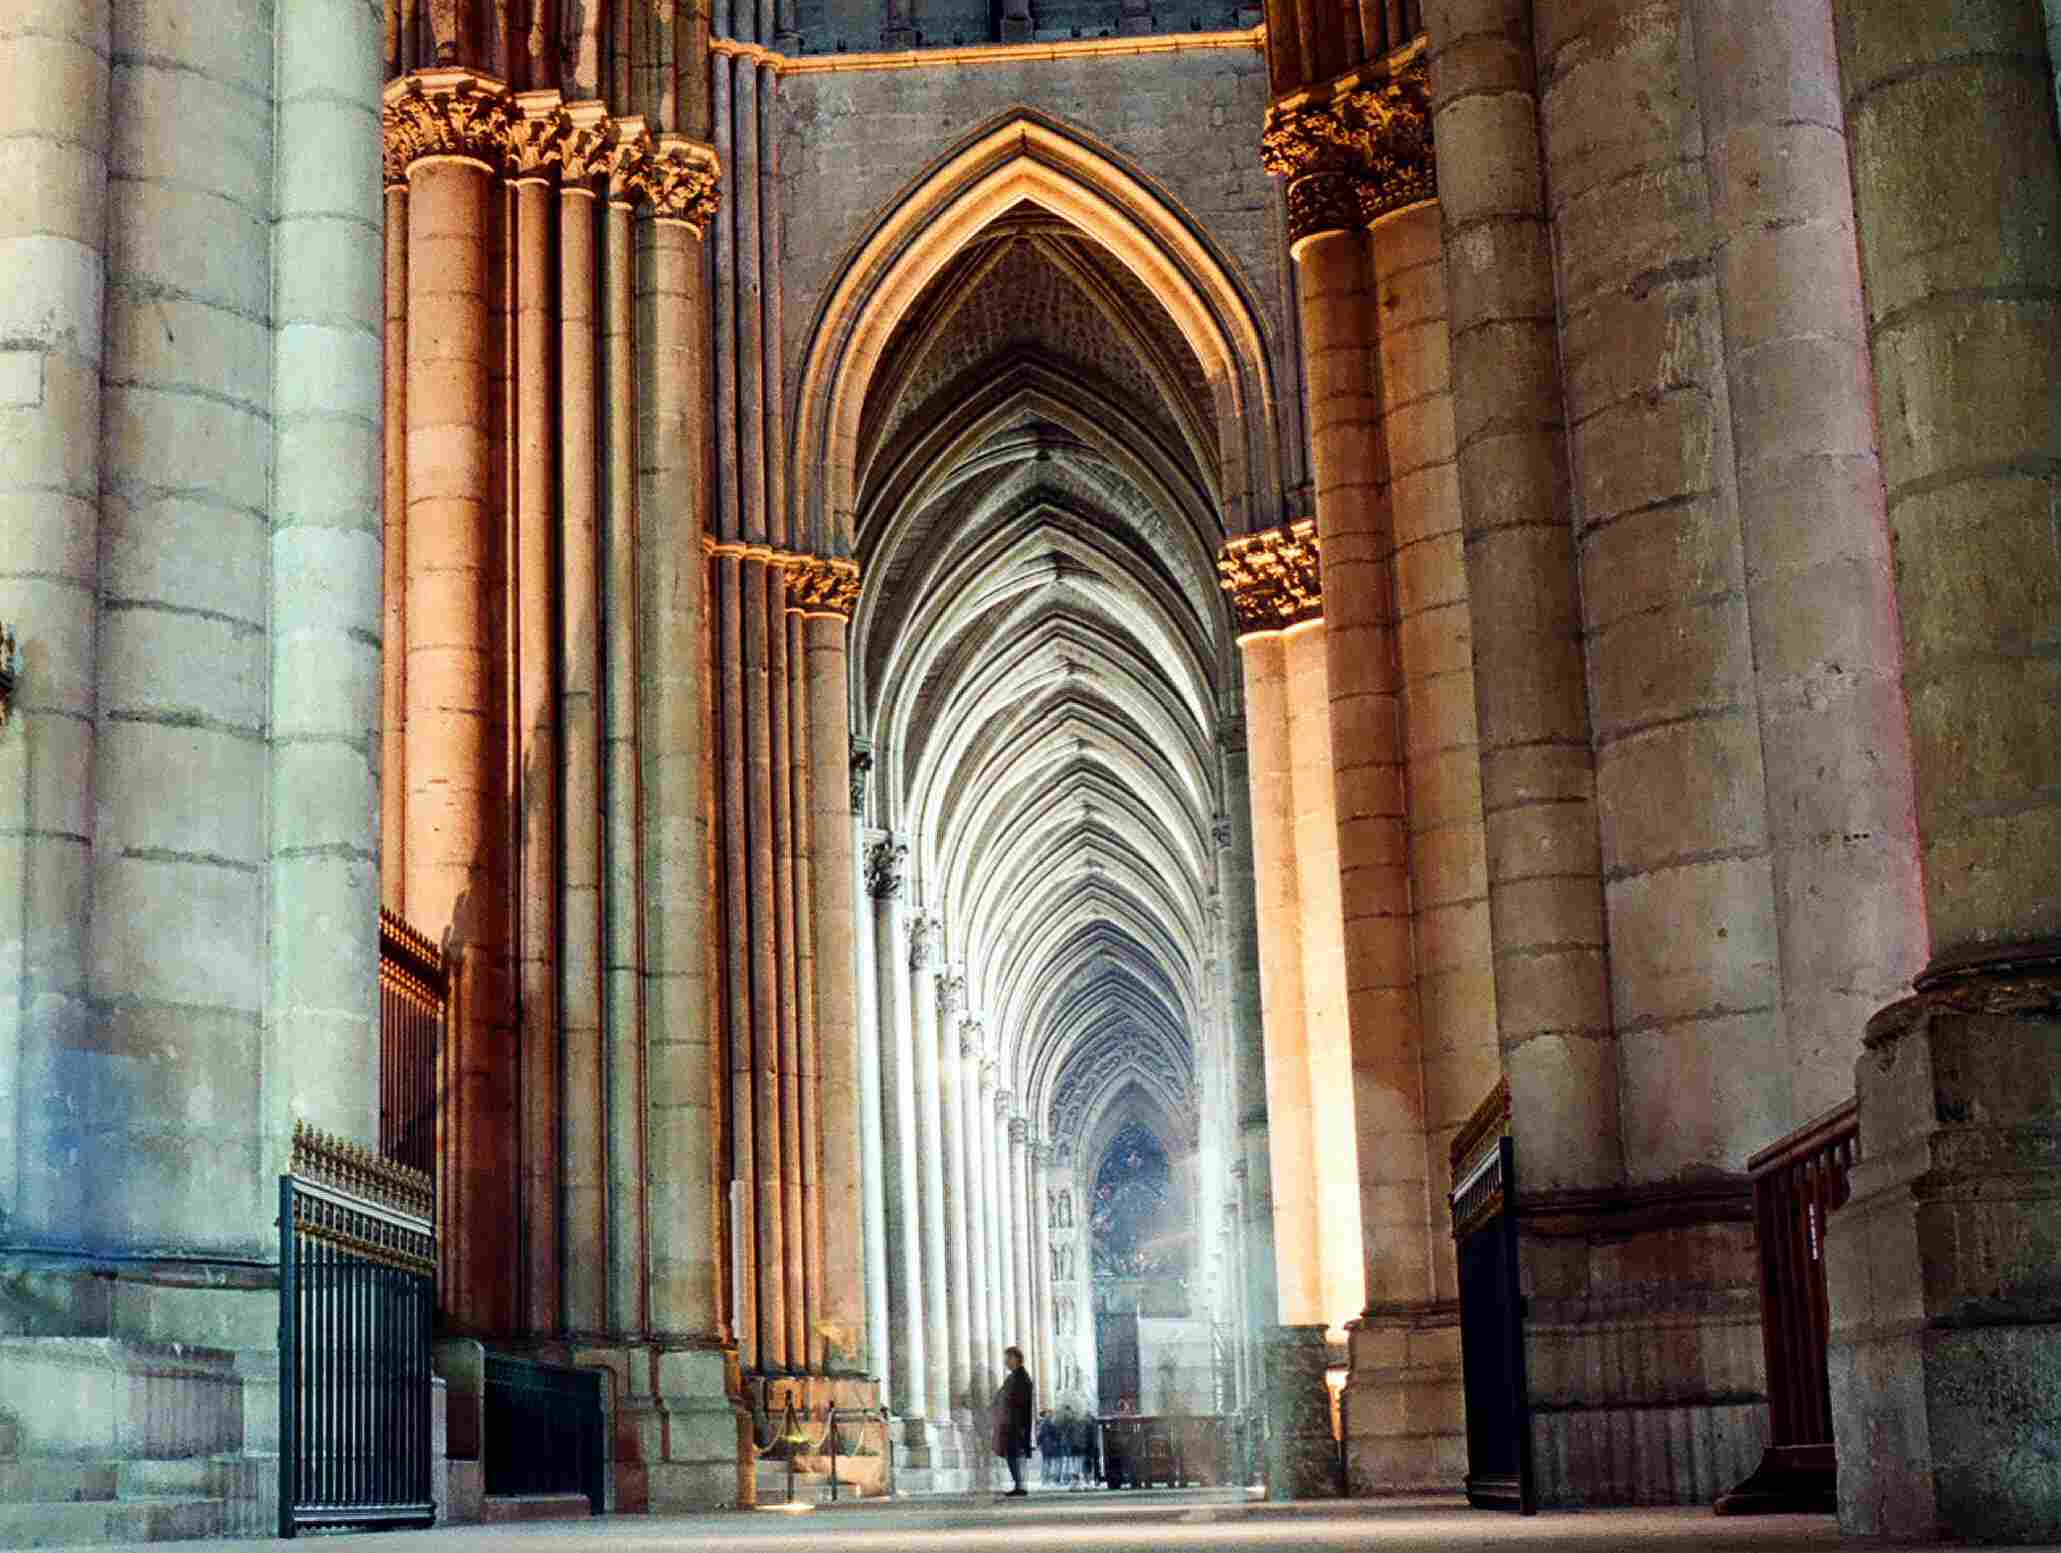 cathedral architecture gothic arches diagram 2006 chevy impala engine what ideas transformed medieval buildings reims notre dame de 12th 13th century pointed